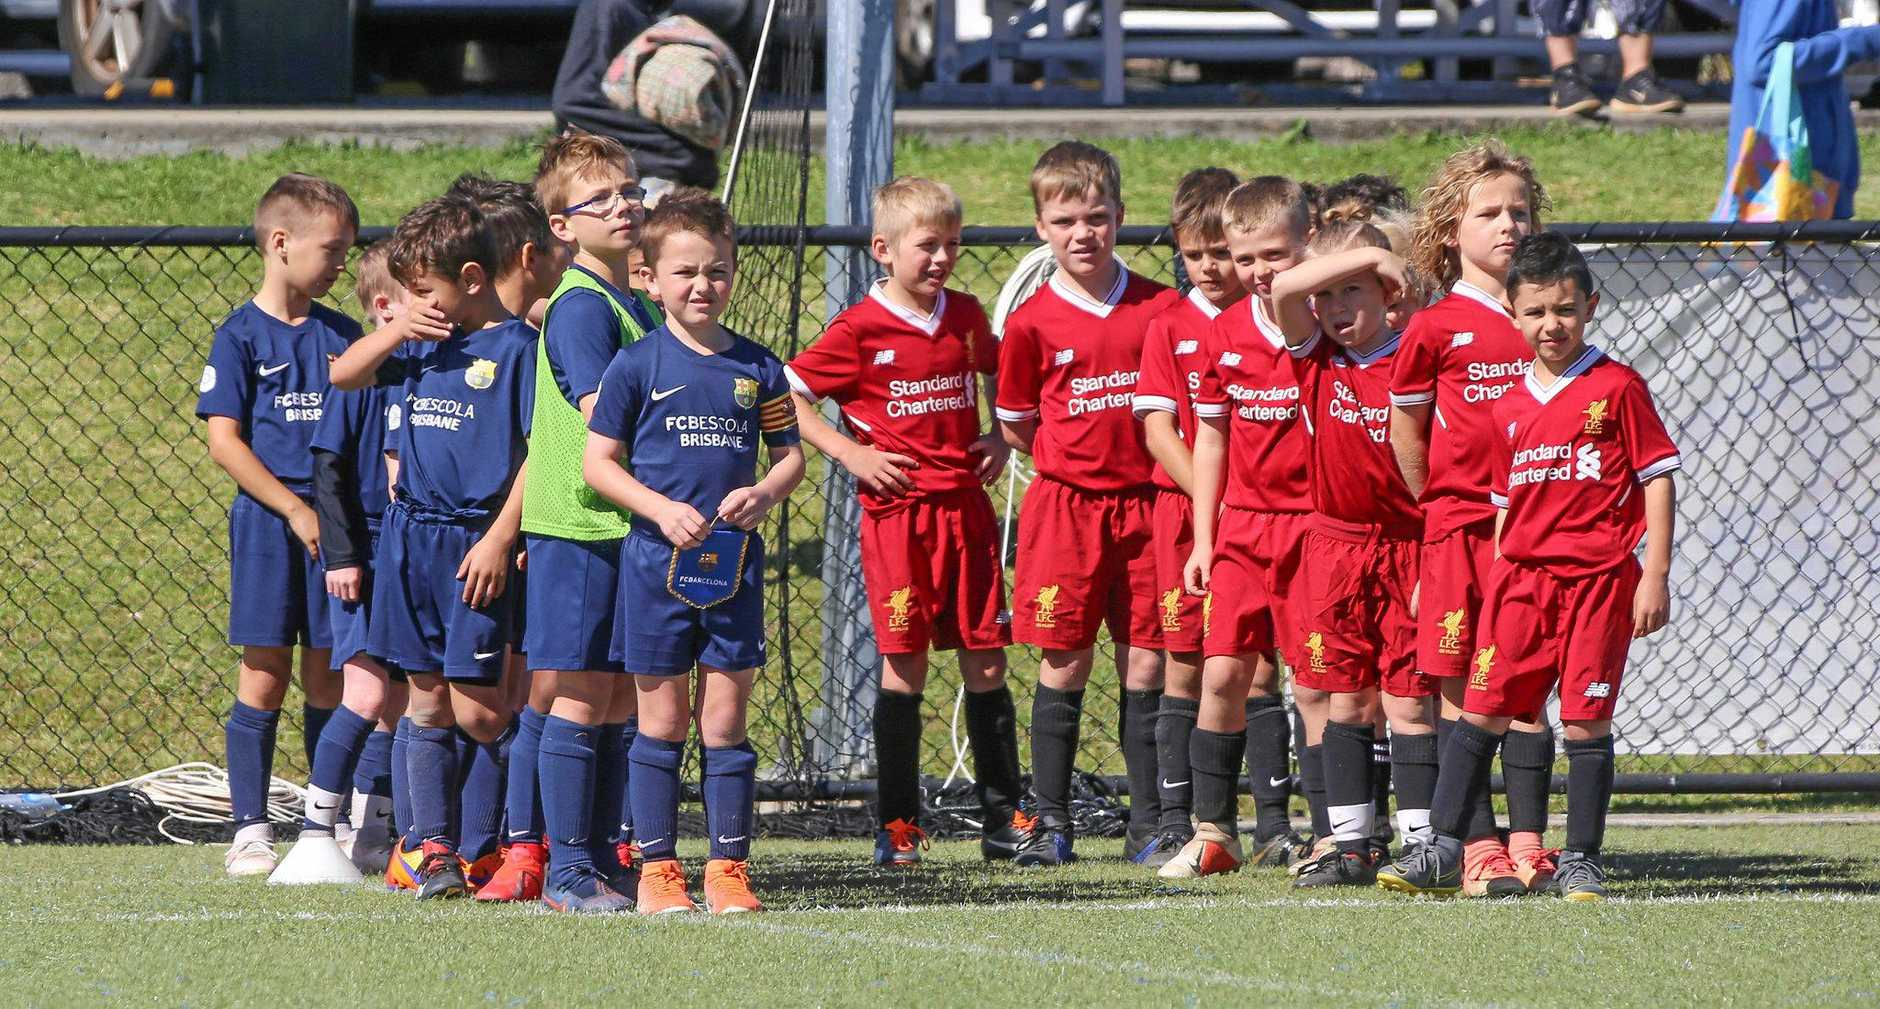 FRIENDLY MATCH: Boys from Brisbane's Barcelona and Lismore's Liverpool academies played against each other at the Southern Cross Football Centre on Sunday.